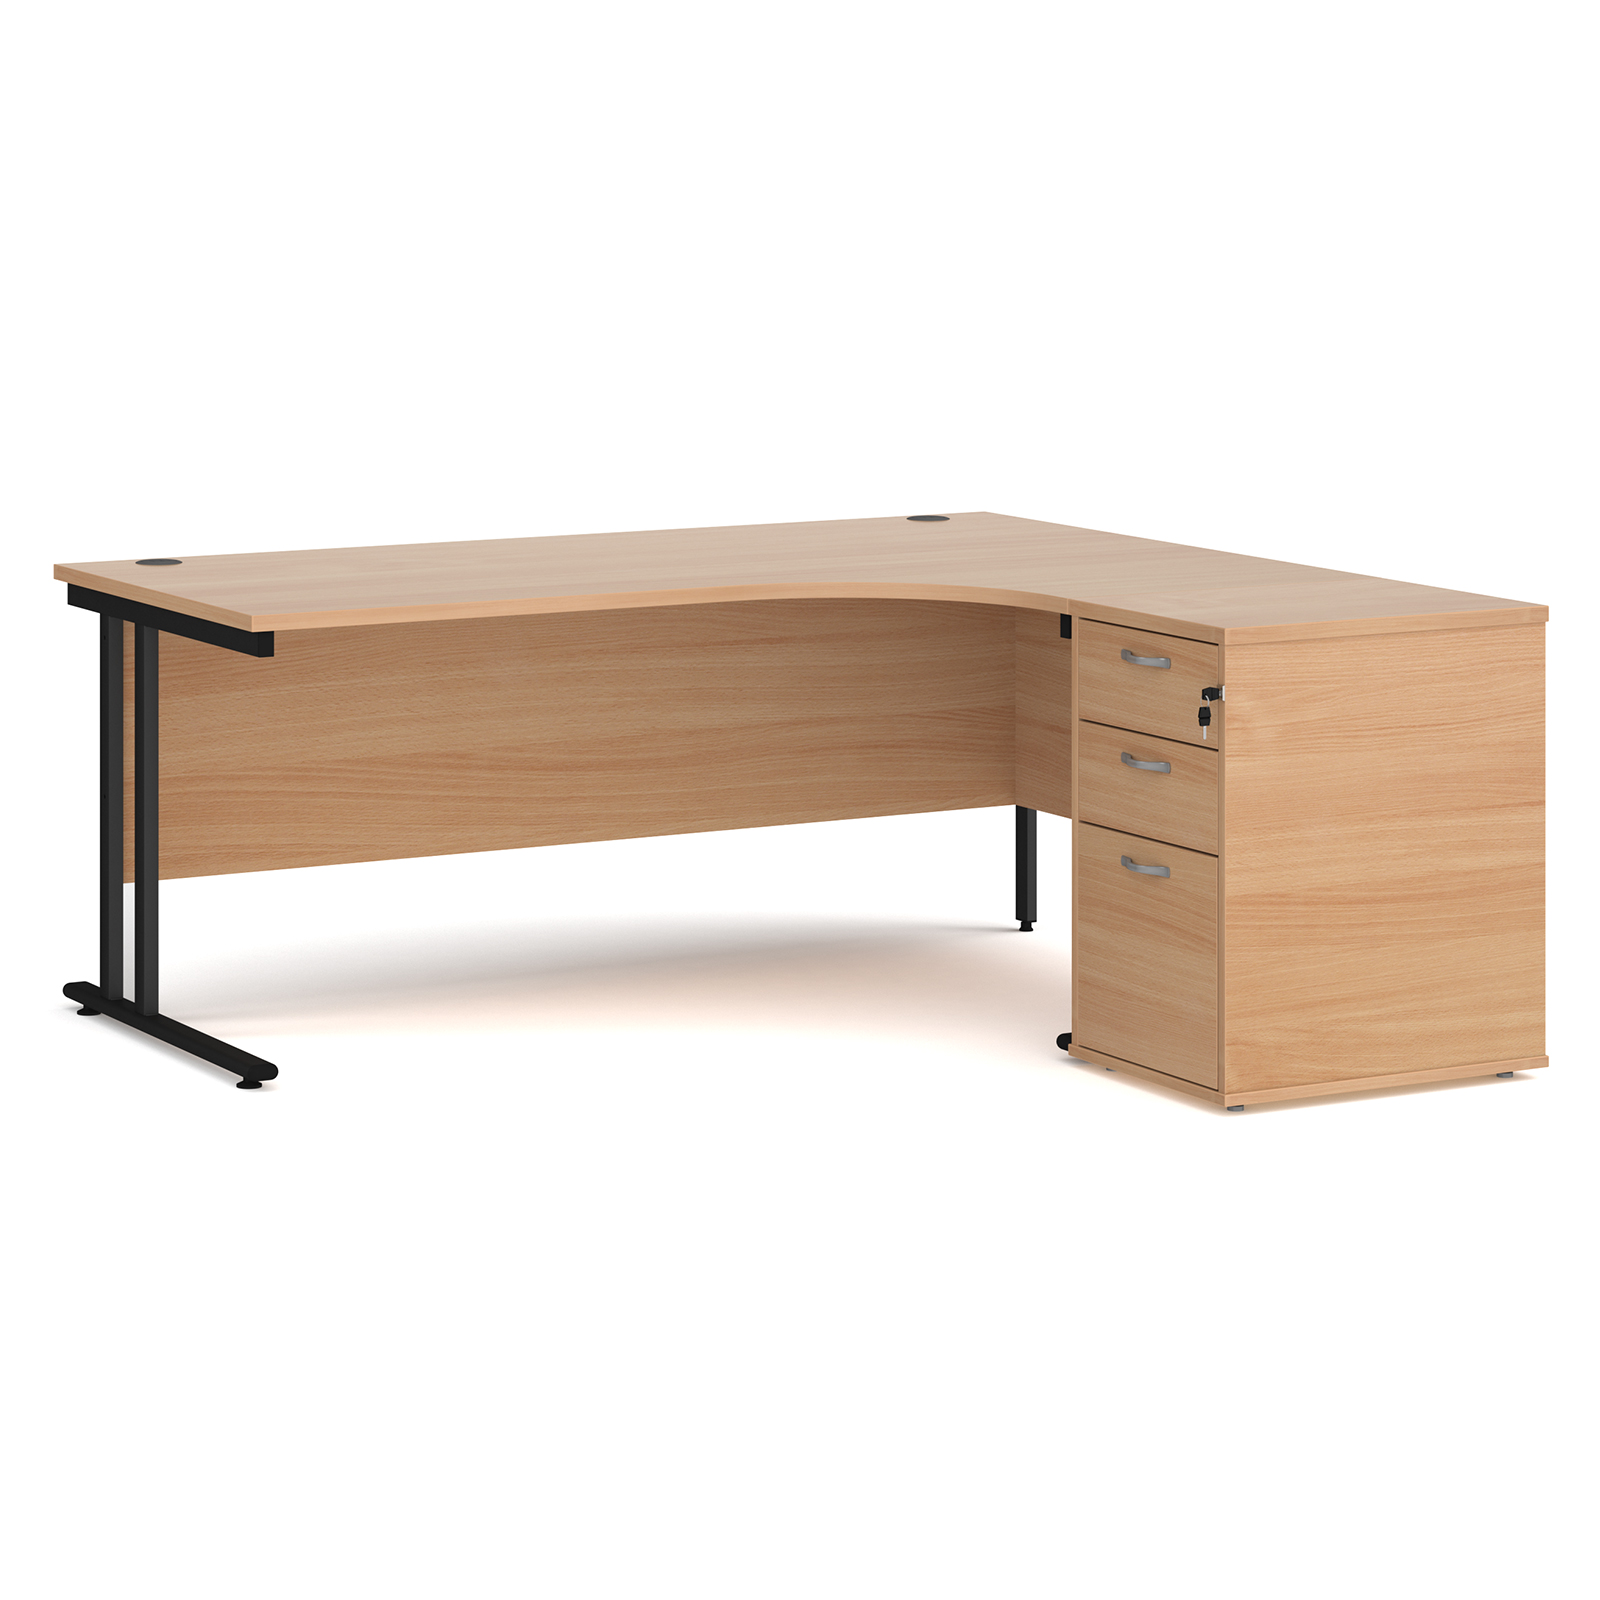 Right Handed Maestro 25 right hand ergonomic desk 1800mm with black cantilever frame and desk high pedestal - beech